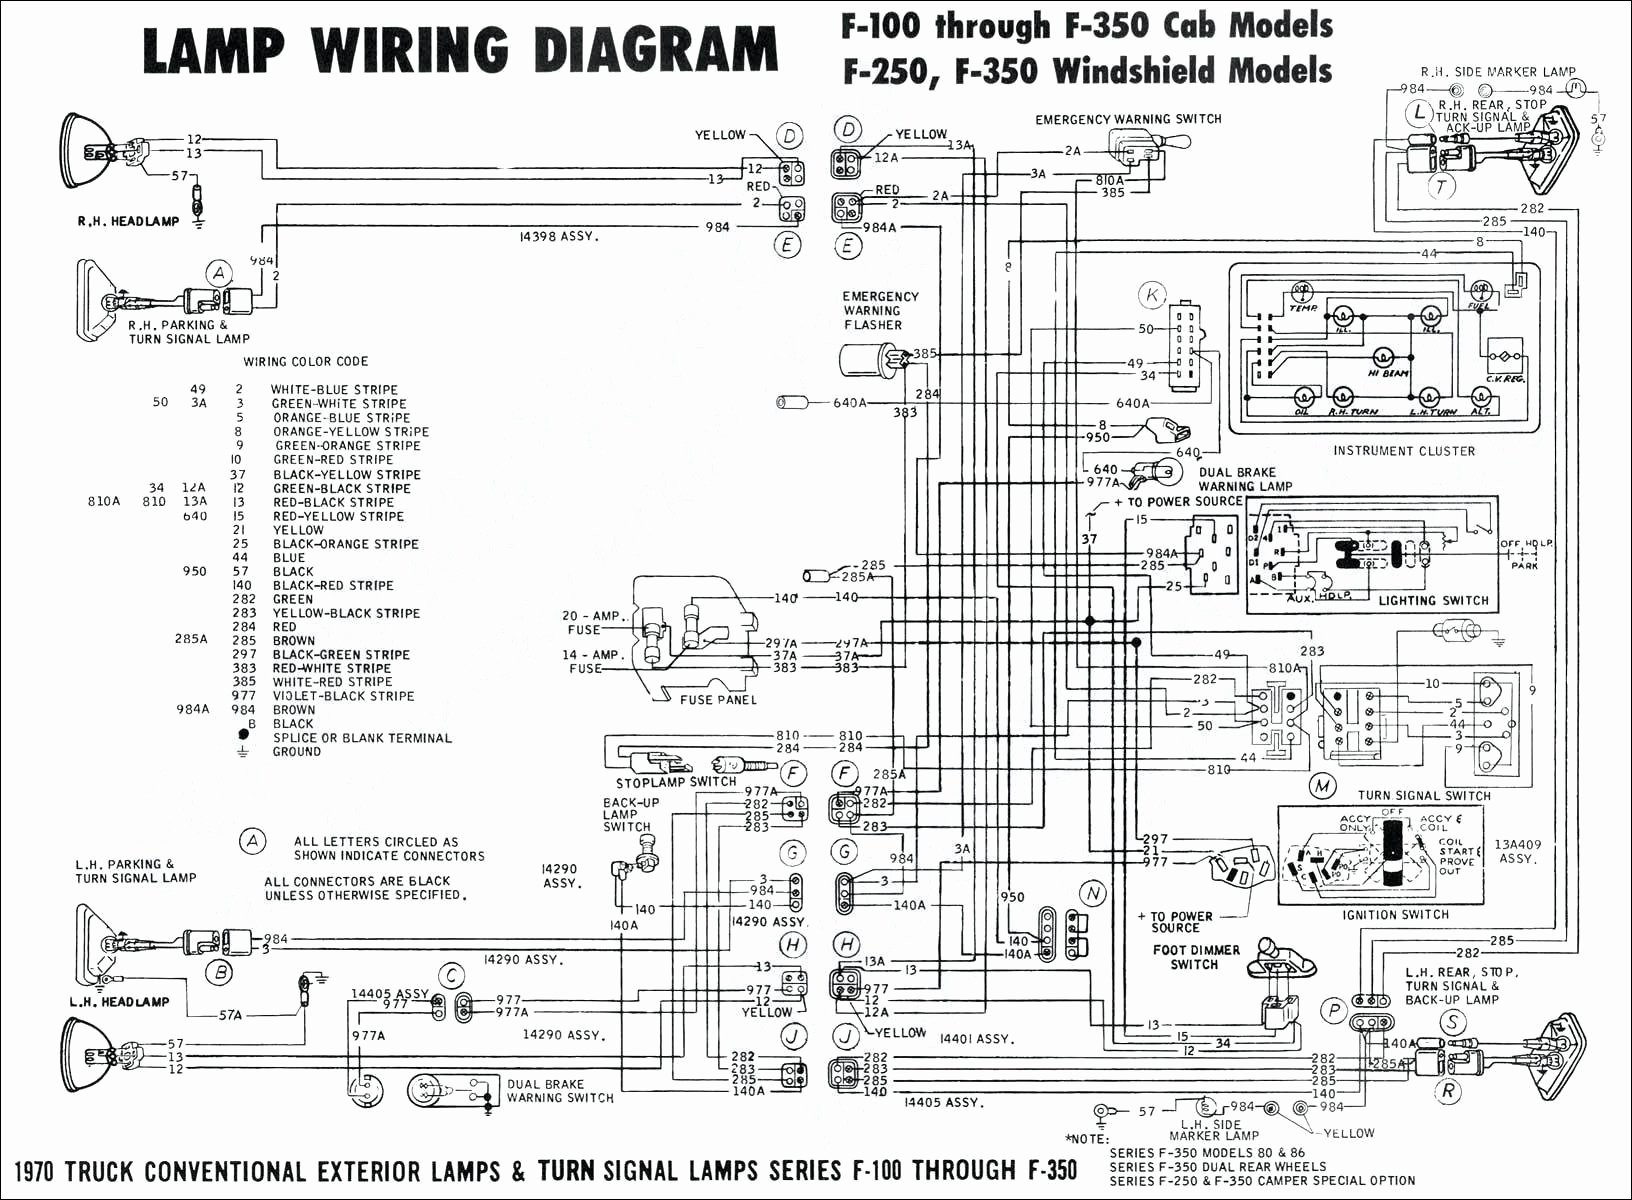 Kenmore Washer Wiring Diagram Oven Wiring Diagram Sears